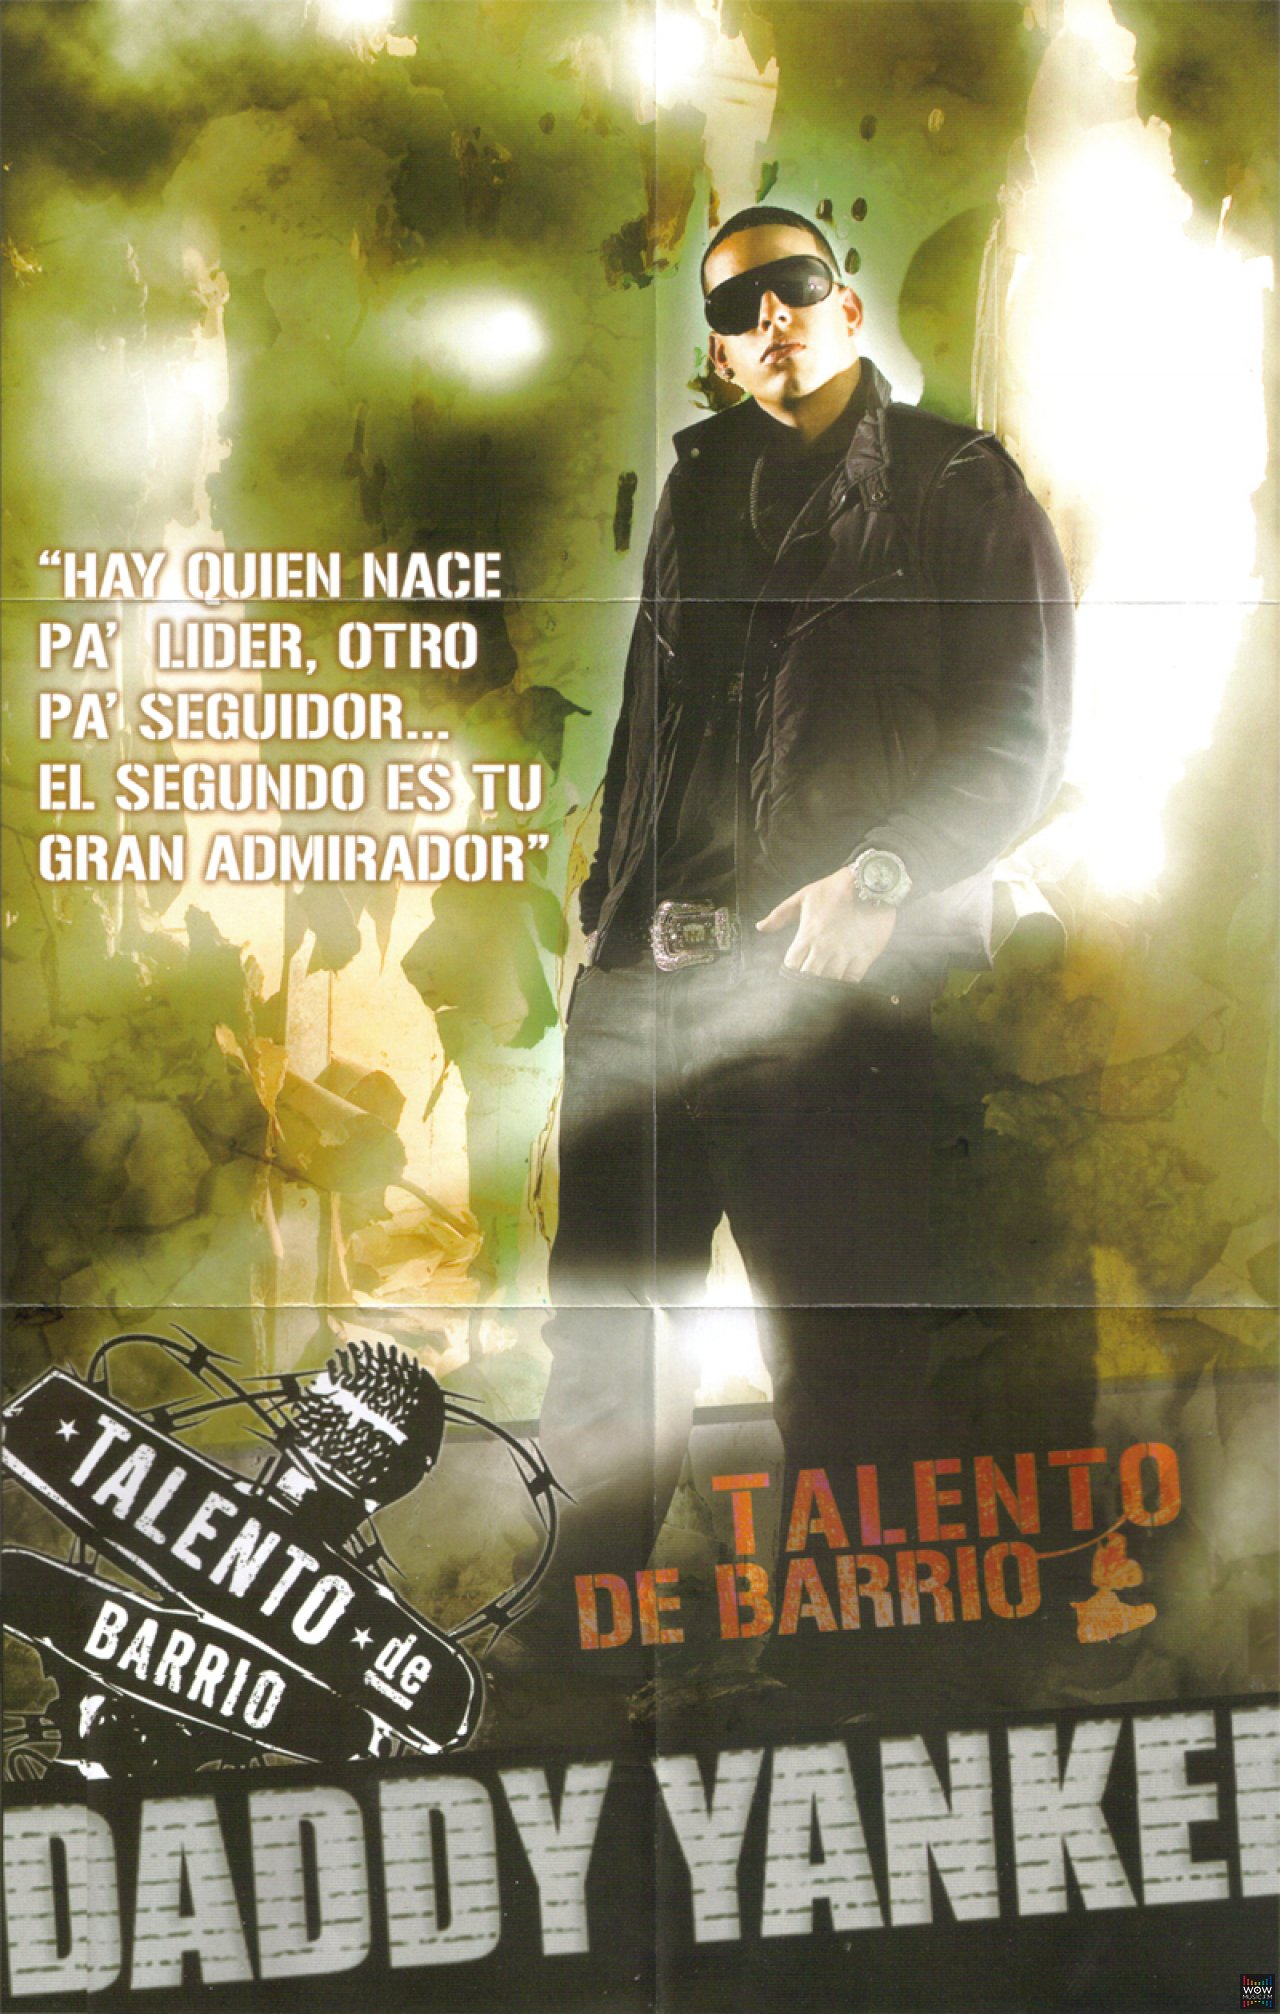 Daddy Yankee Talento De Barrio Poster Gallery Daddy Yankee Wowmusic Fm Musica Latina